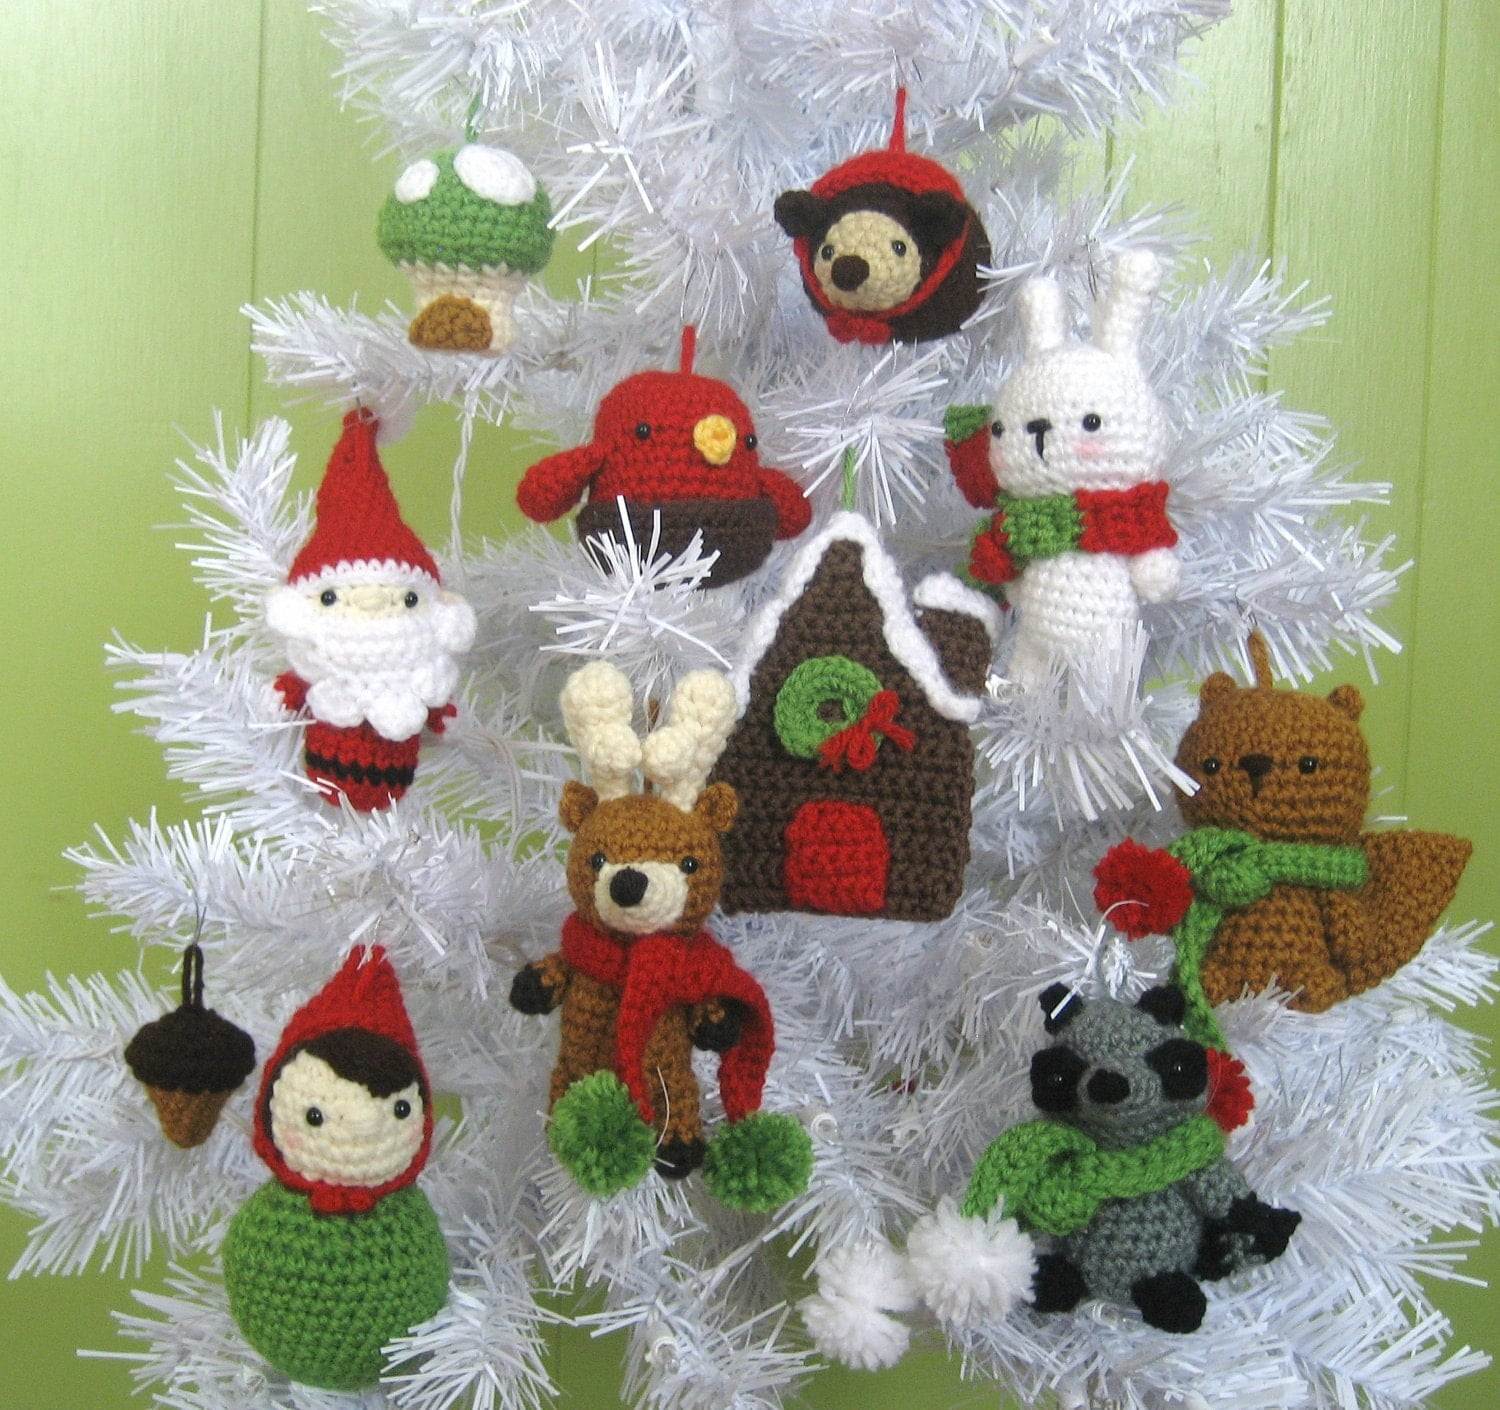 Crochet Christmas Ornaments Pattern Free Patterns For ...